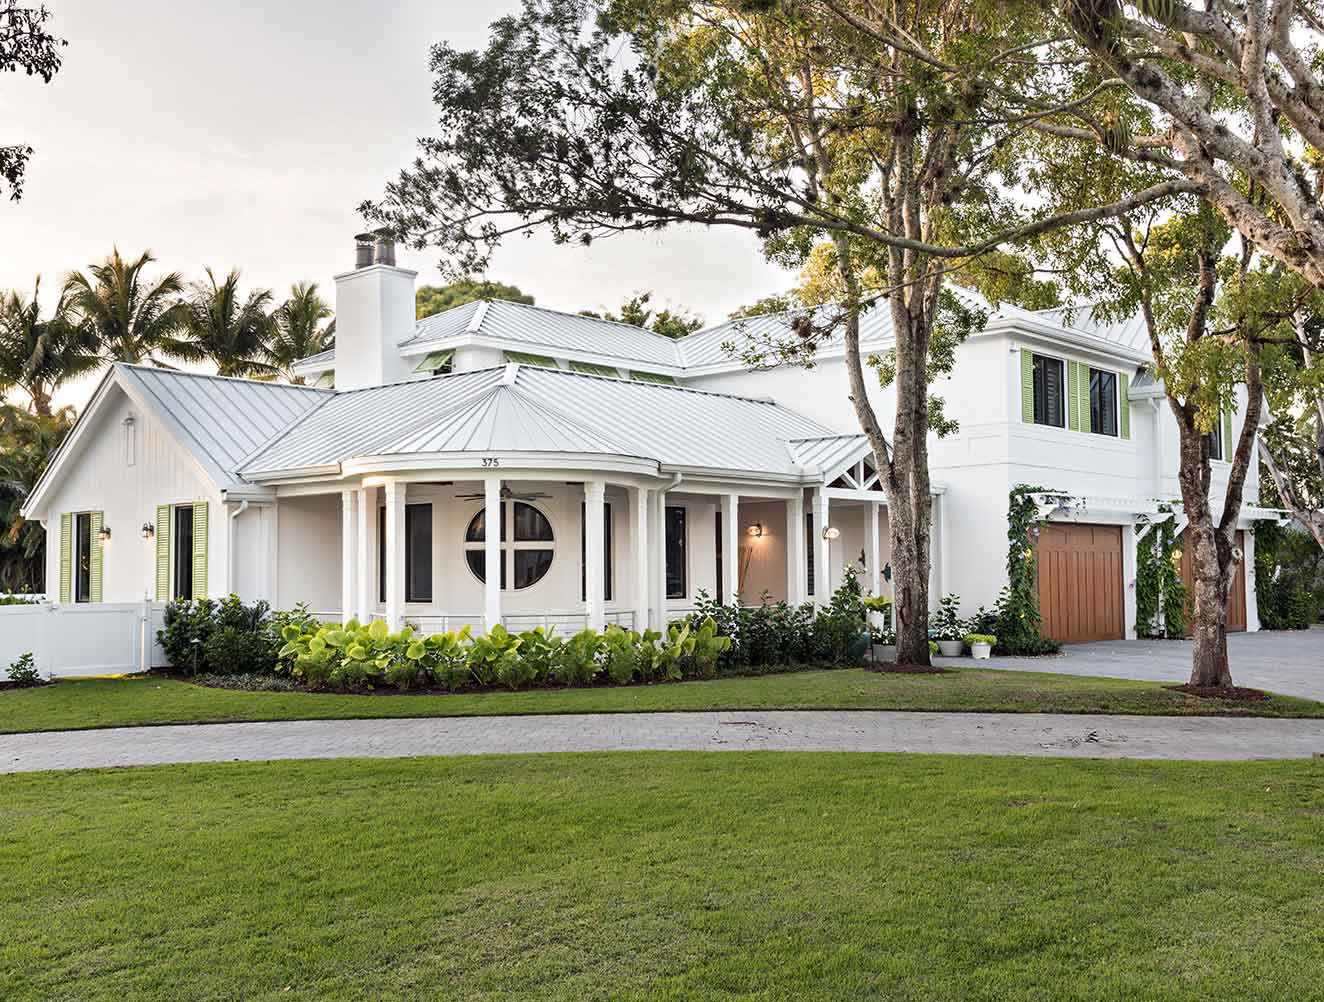 Exterior Architectural details at Yucca Residence in Naples Florida, single family home designed by Kukk Architecture & Design Naples Architecture Firm